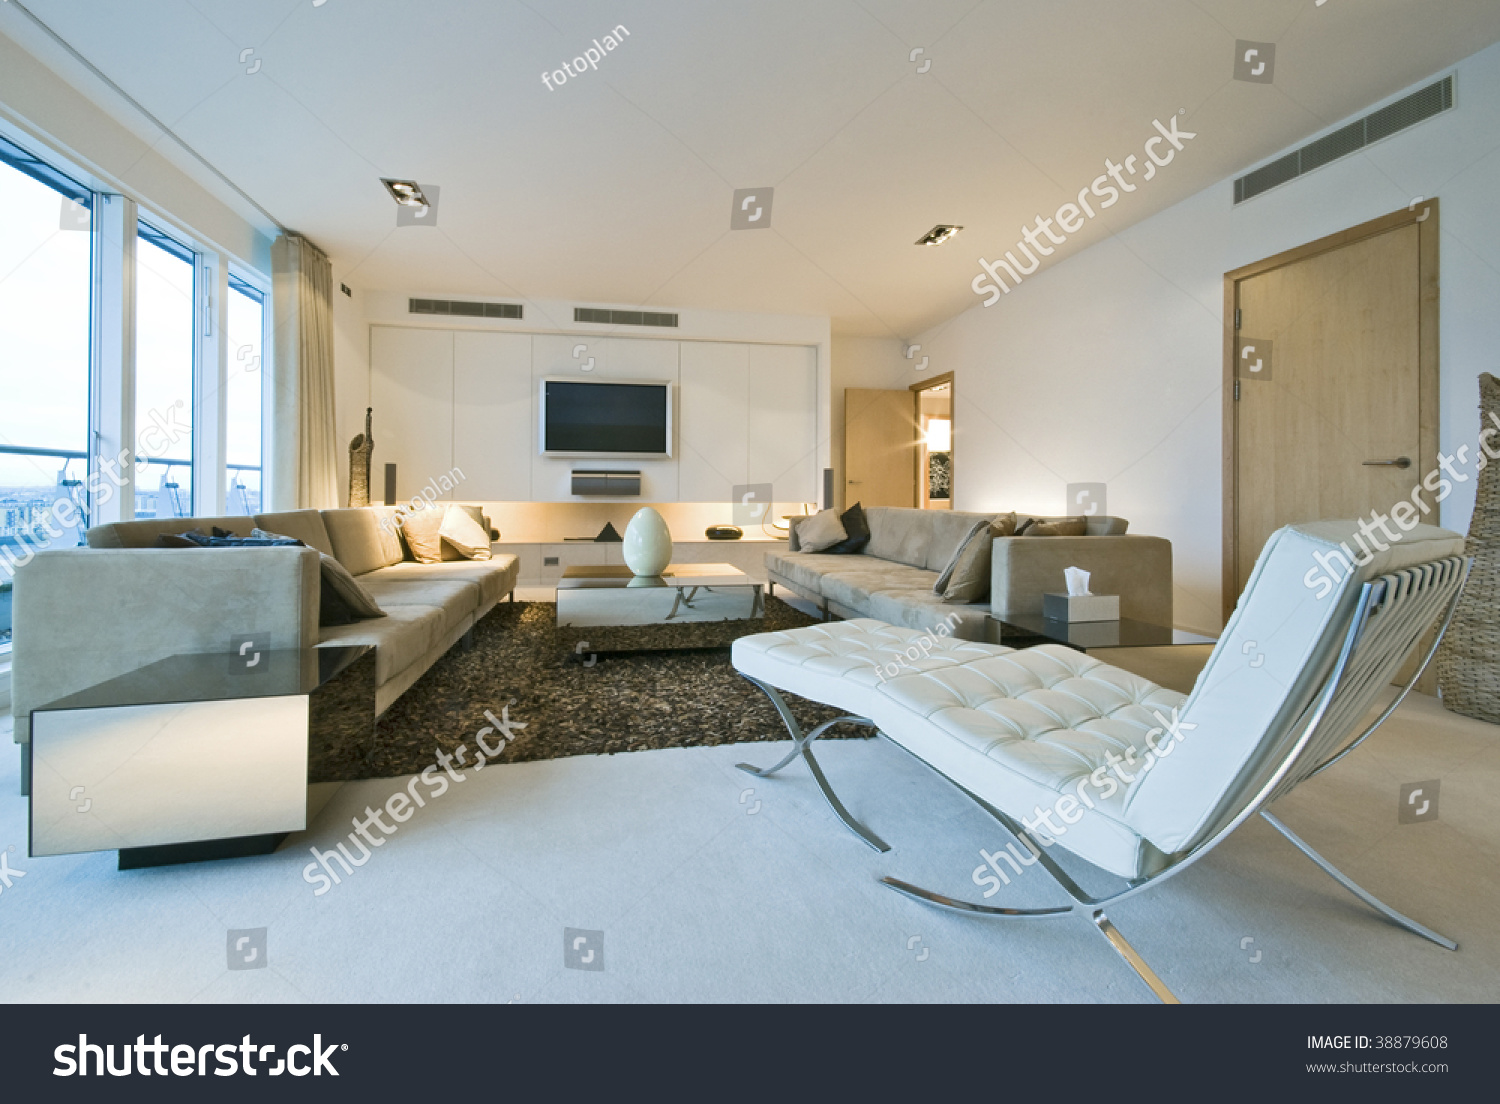 Modern Luxury Living Room With Designer Furniture Stock Photo 38879608 Shut